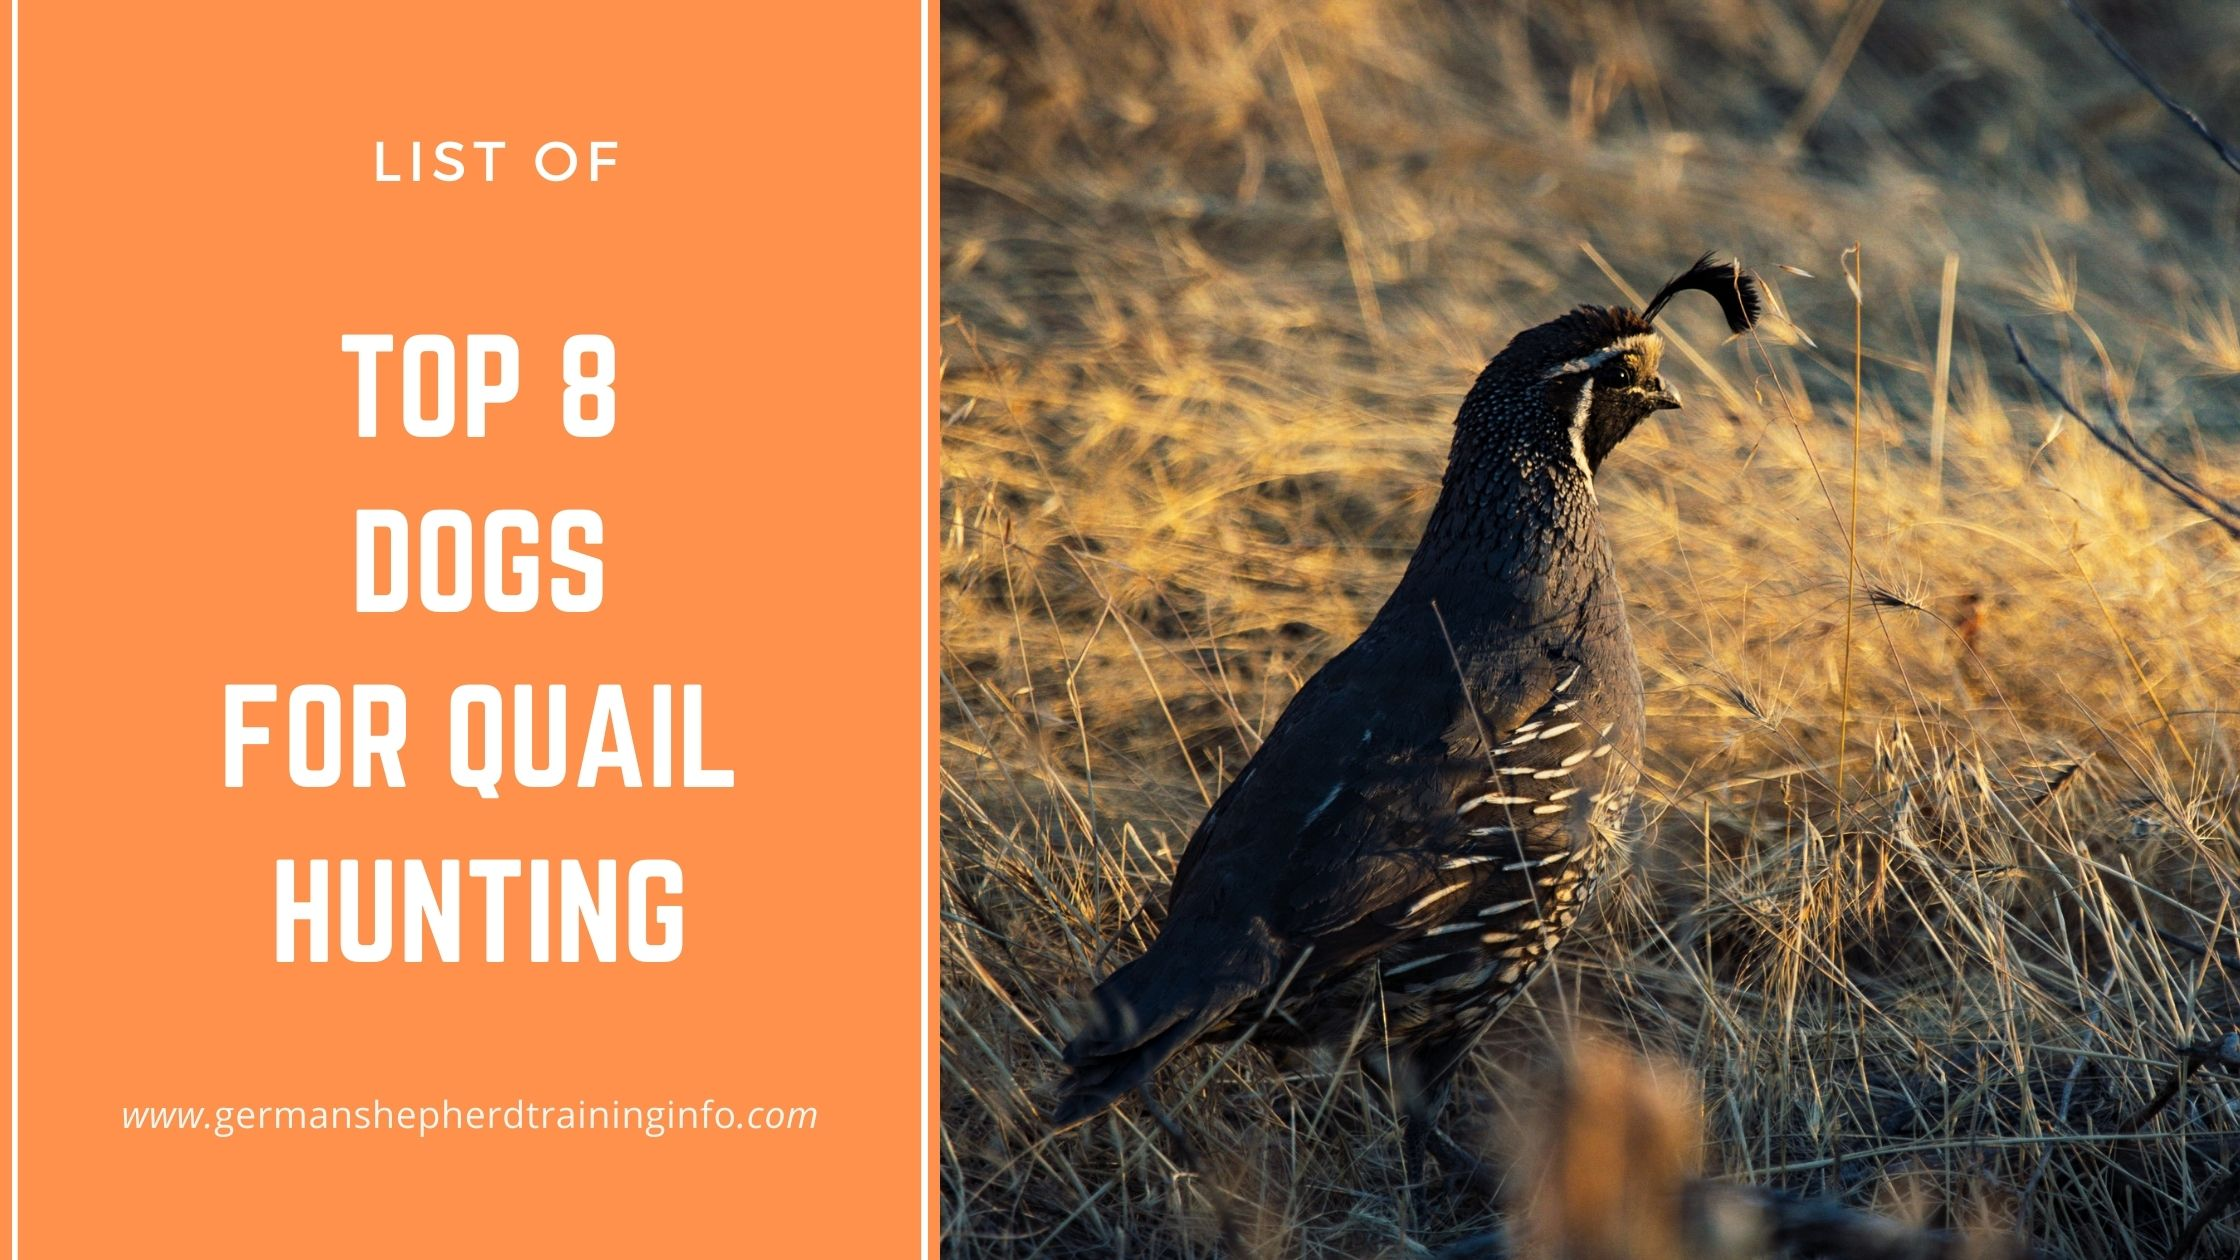 Top 8 Dogs for Quail Hunting